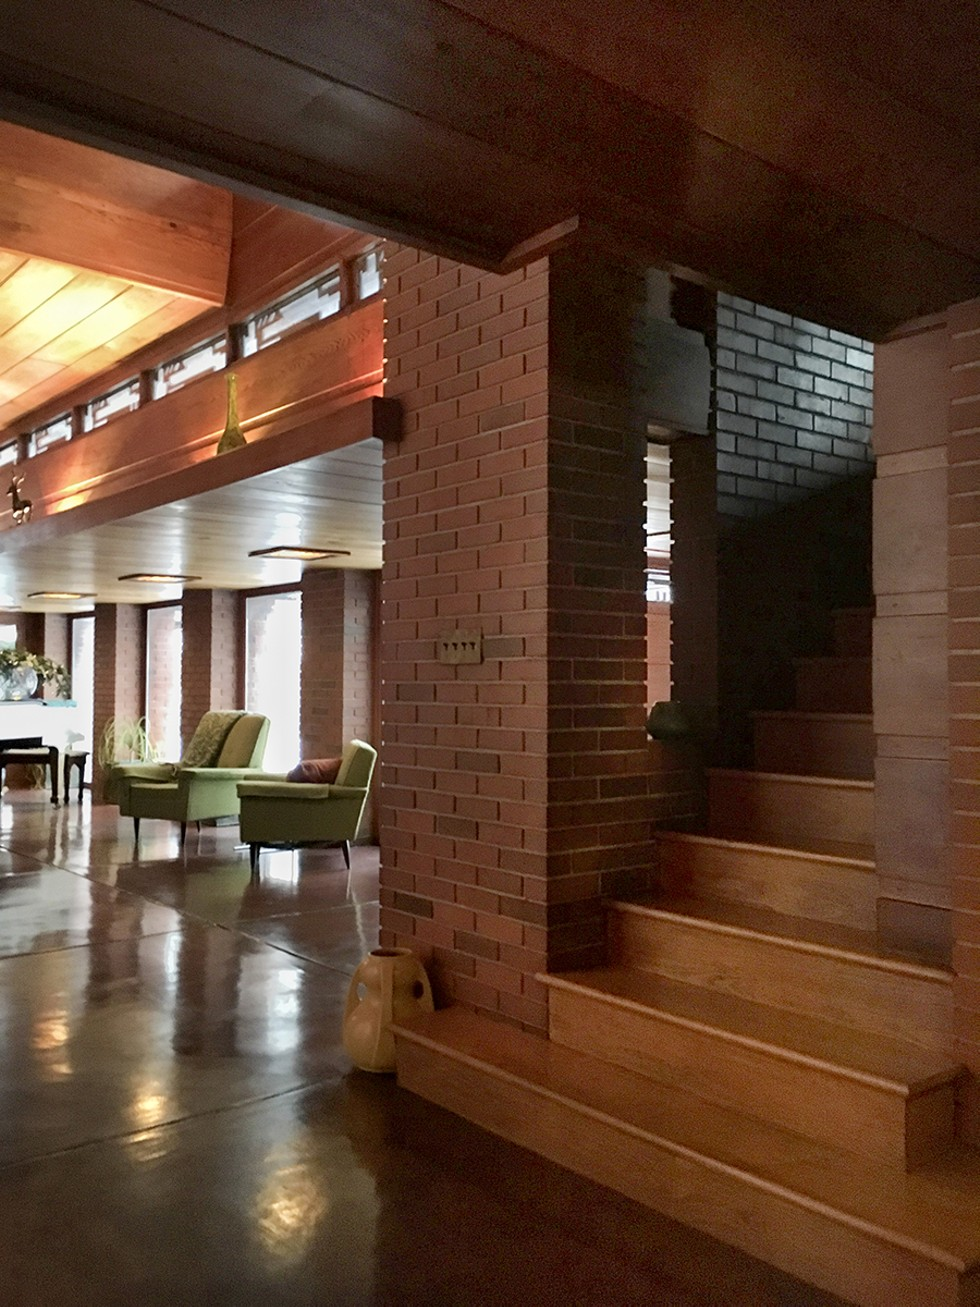 Stairs to 2nd floor sleeping rooms, Frank Lloyd Wright Bernard Schwartz house, AKA 'Still Bend' - MATTHEW GILSON